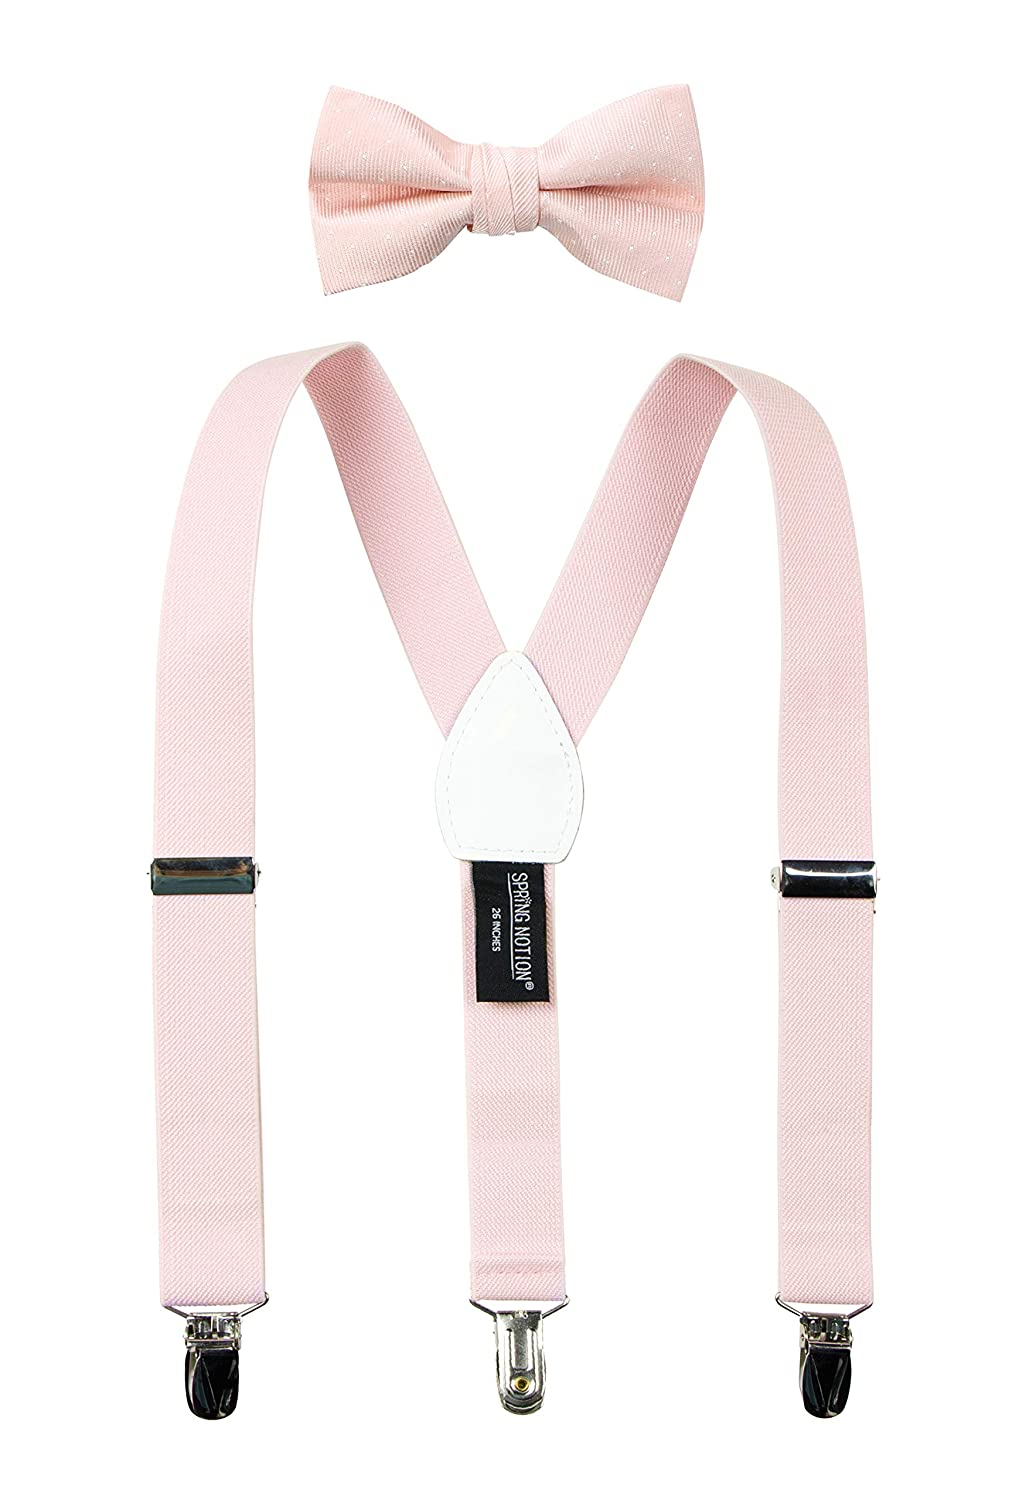 Spring Notion Boys Suspenders and Polka Dot Bow Tie Set